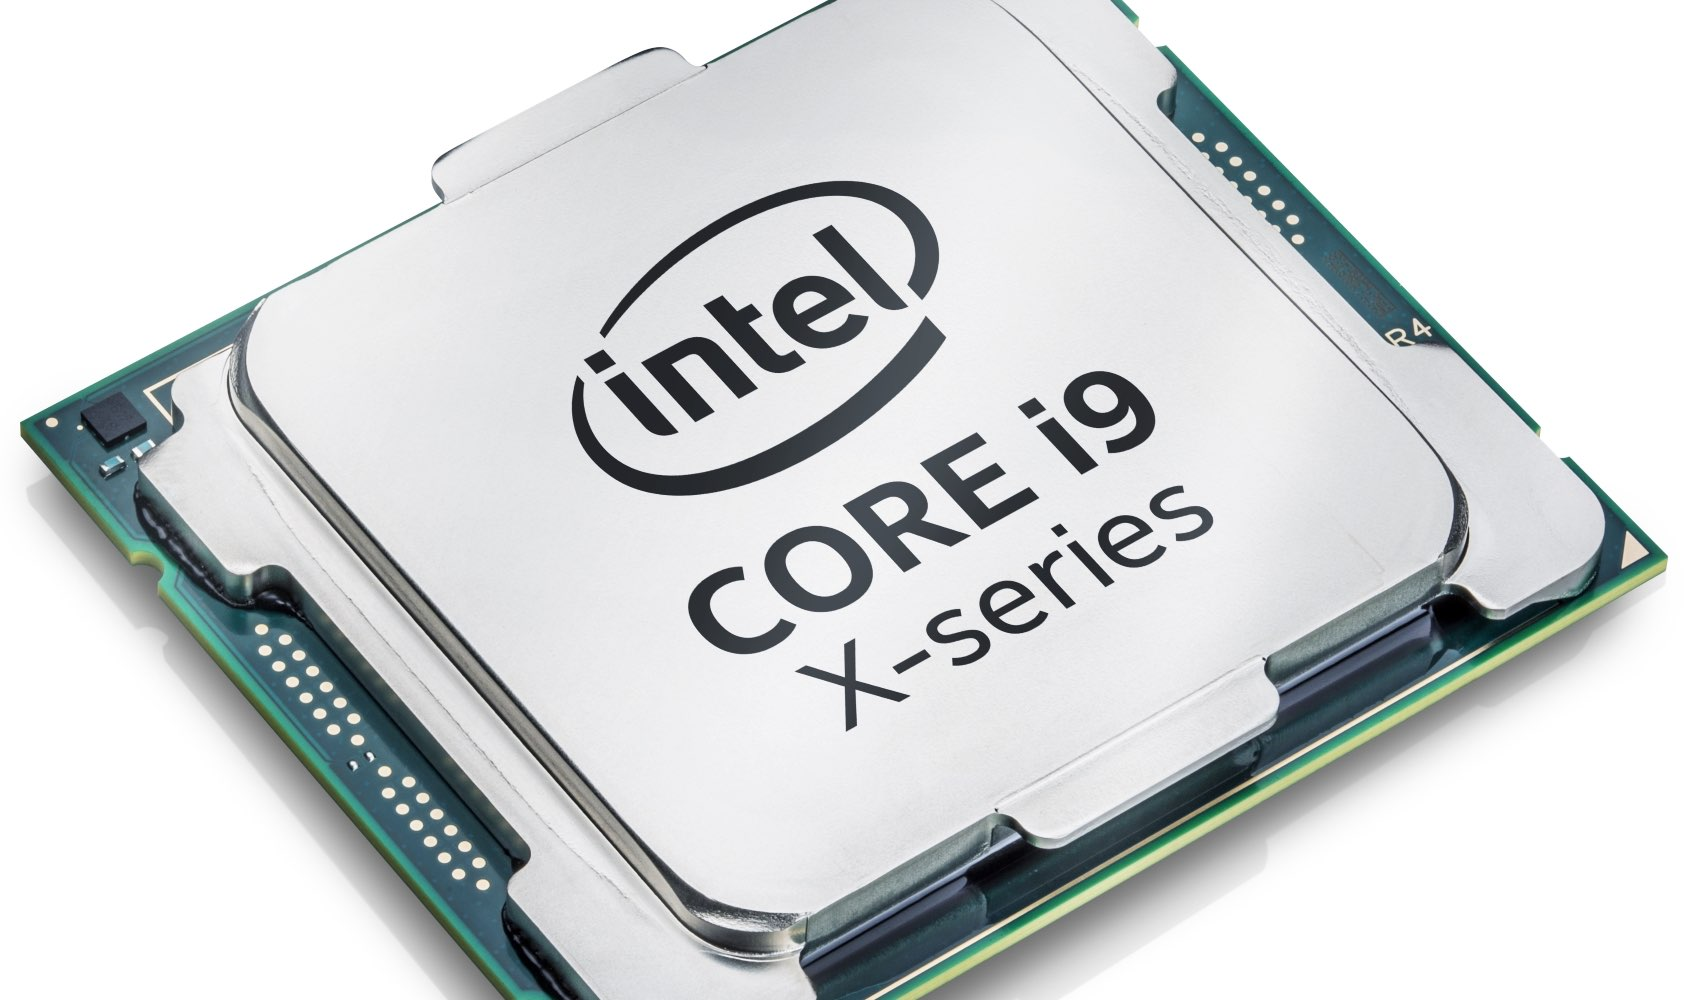 Trending: Intel Core X I9 Processor Includes 18 Cores, 32 Threads